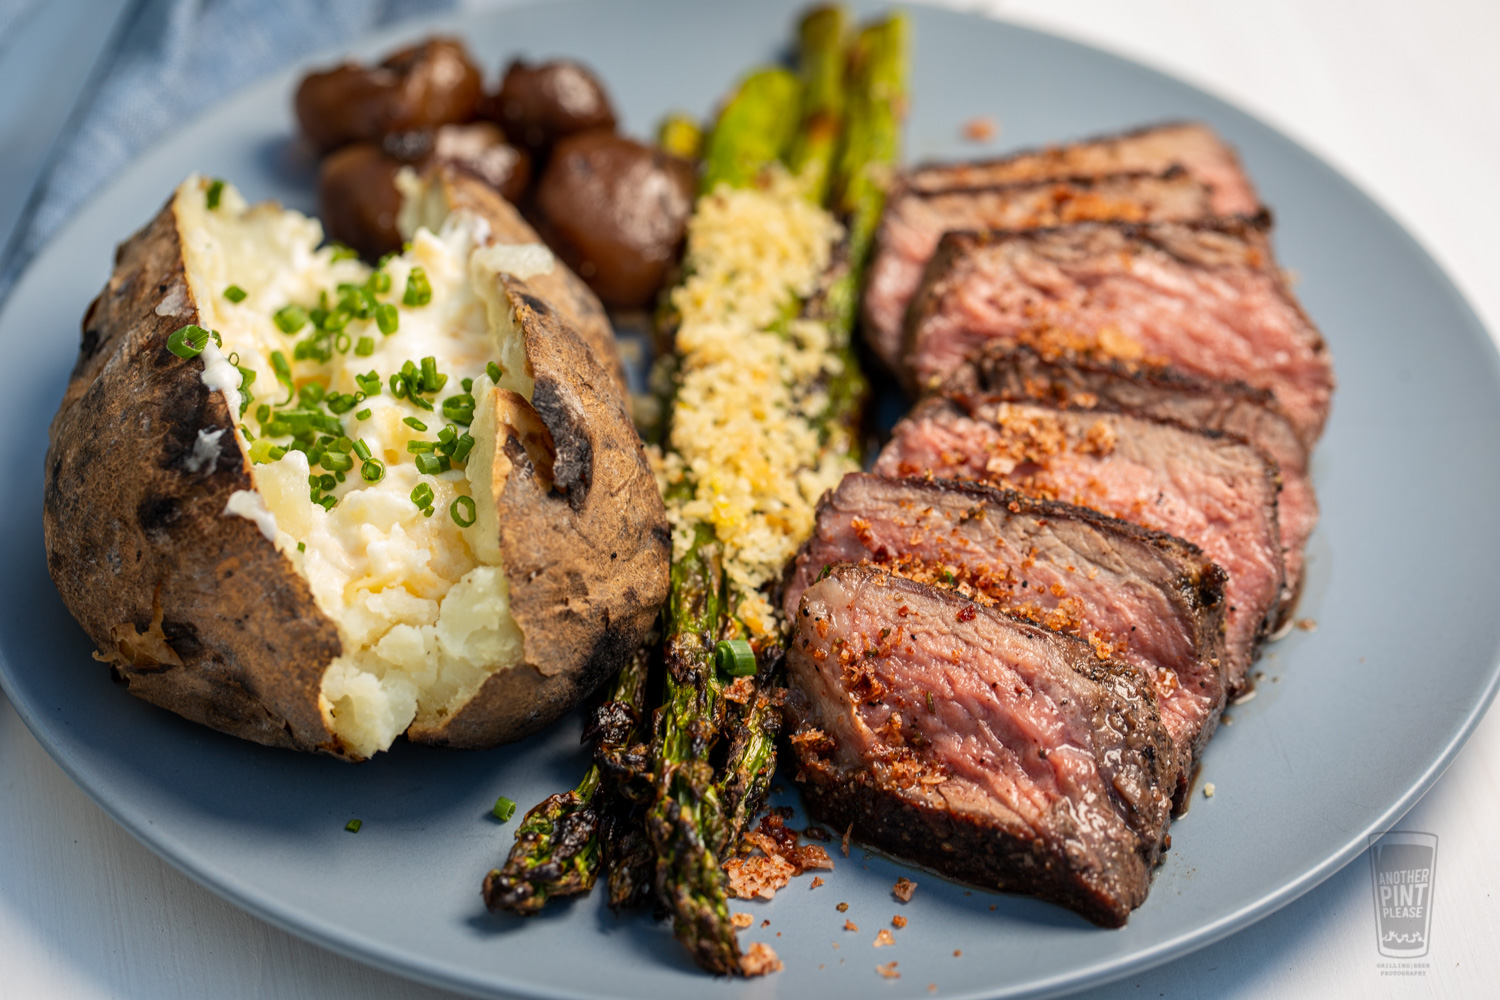 Grilled NY Strip with Loaded Grilled Potatoes and Asparagus